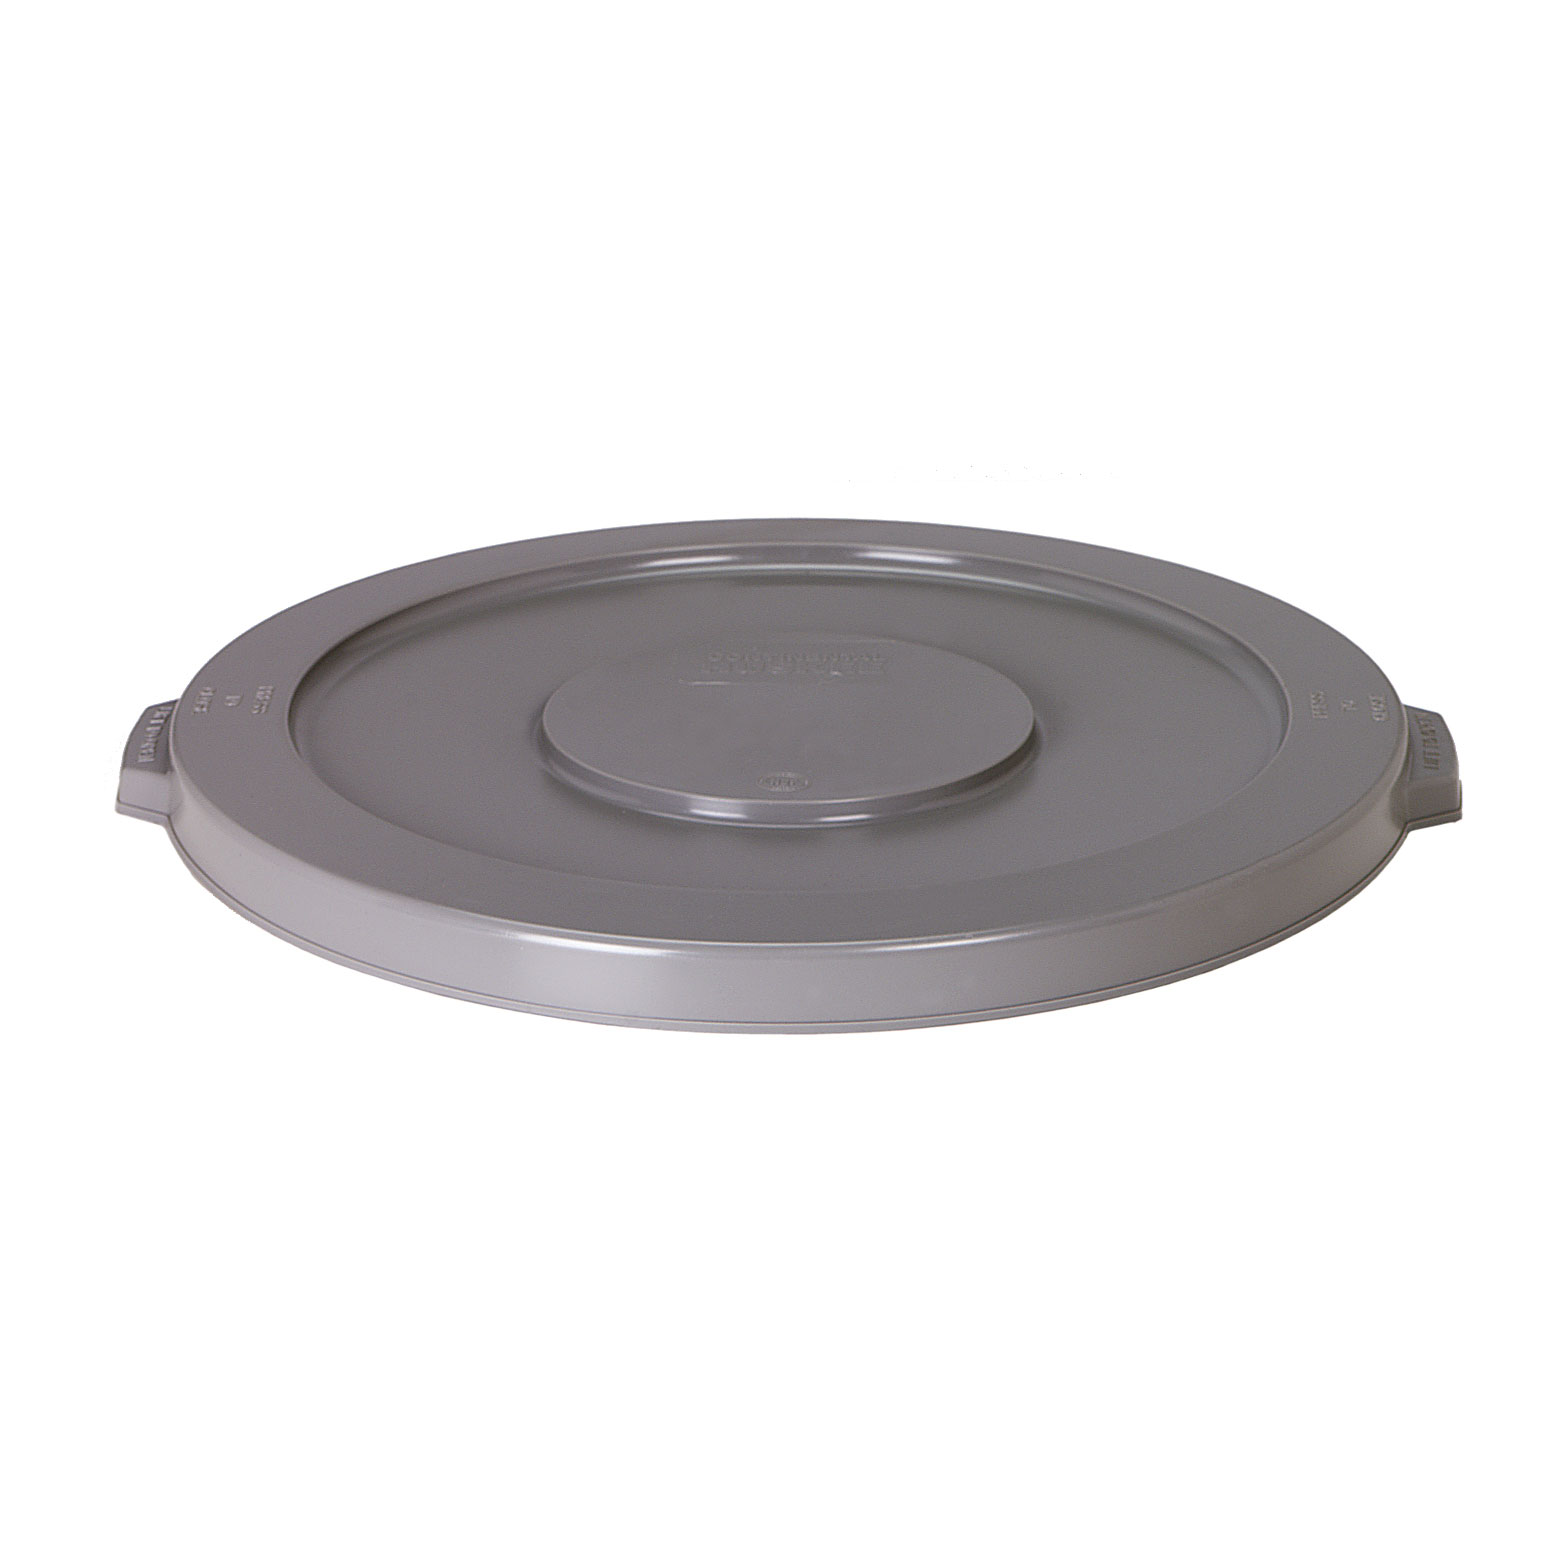 Royal Industries CCP 1002GY trash receptacle lid / top